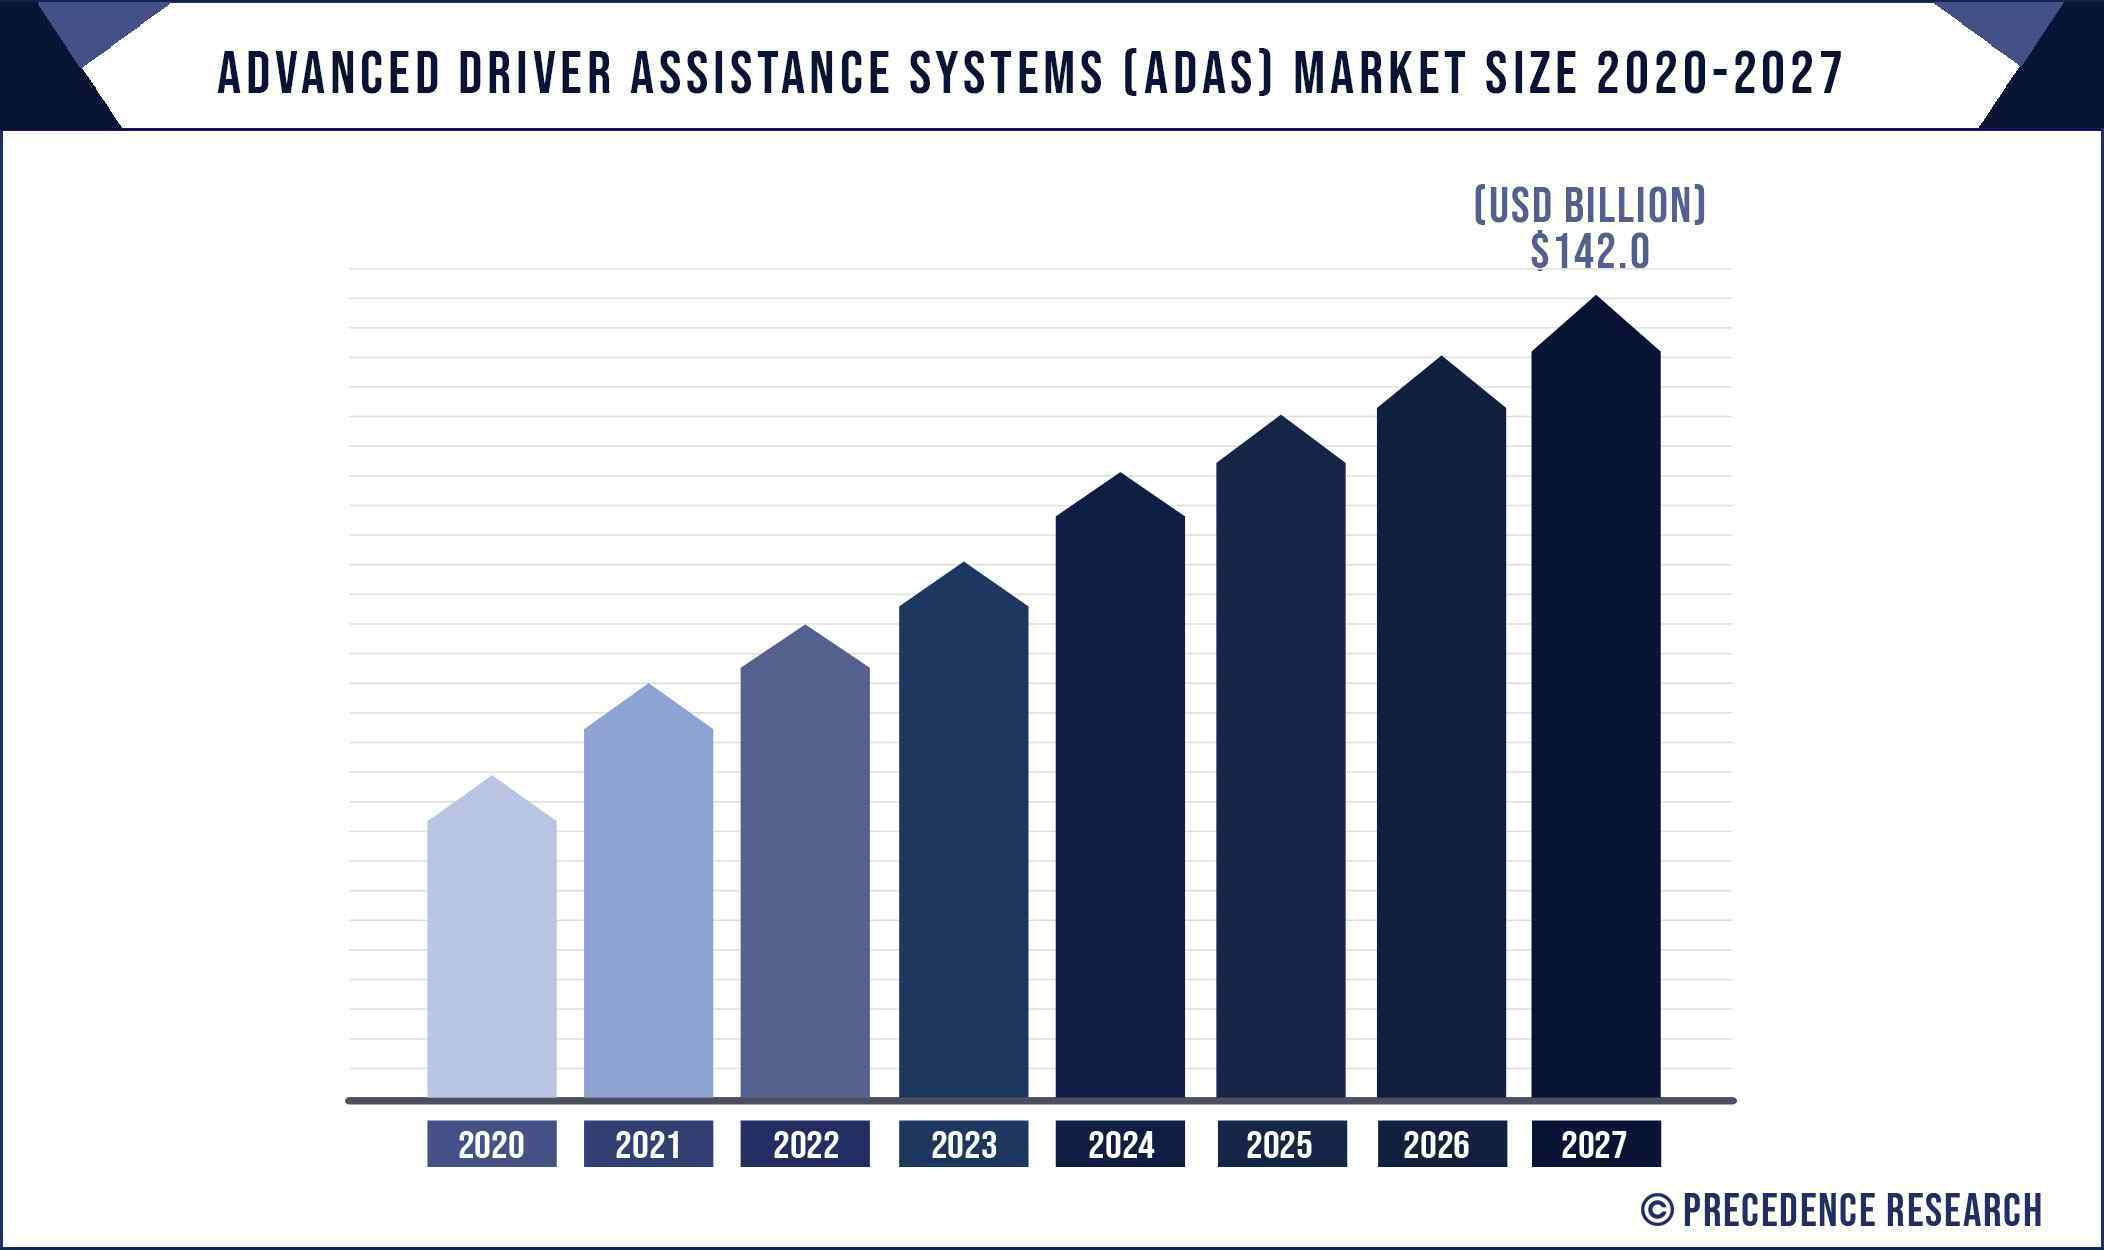 Advanced Driver Assistance Systems (ADAS) Market Size 2020 To 2027